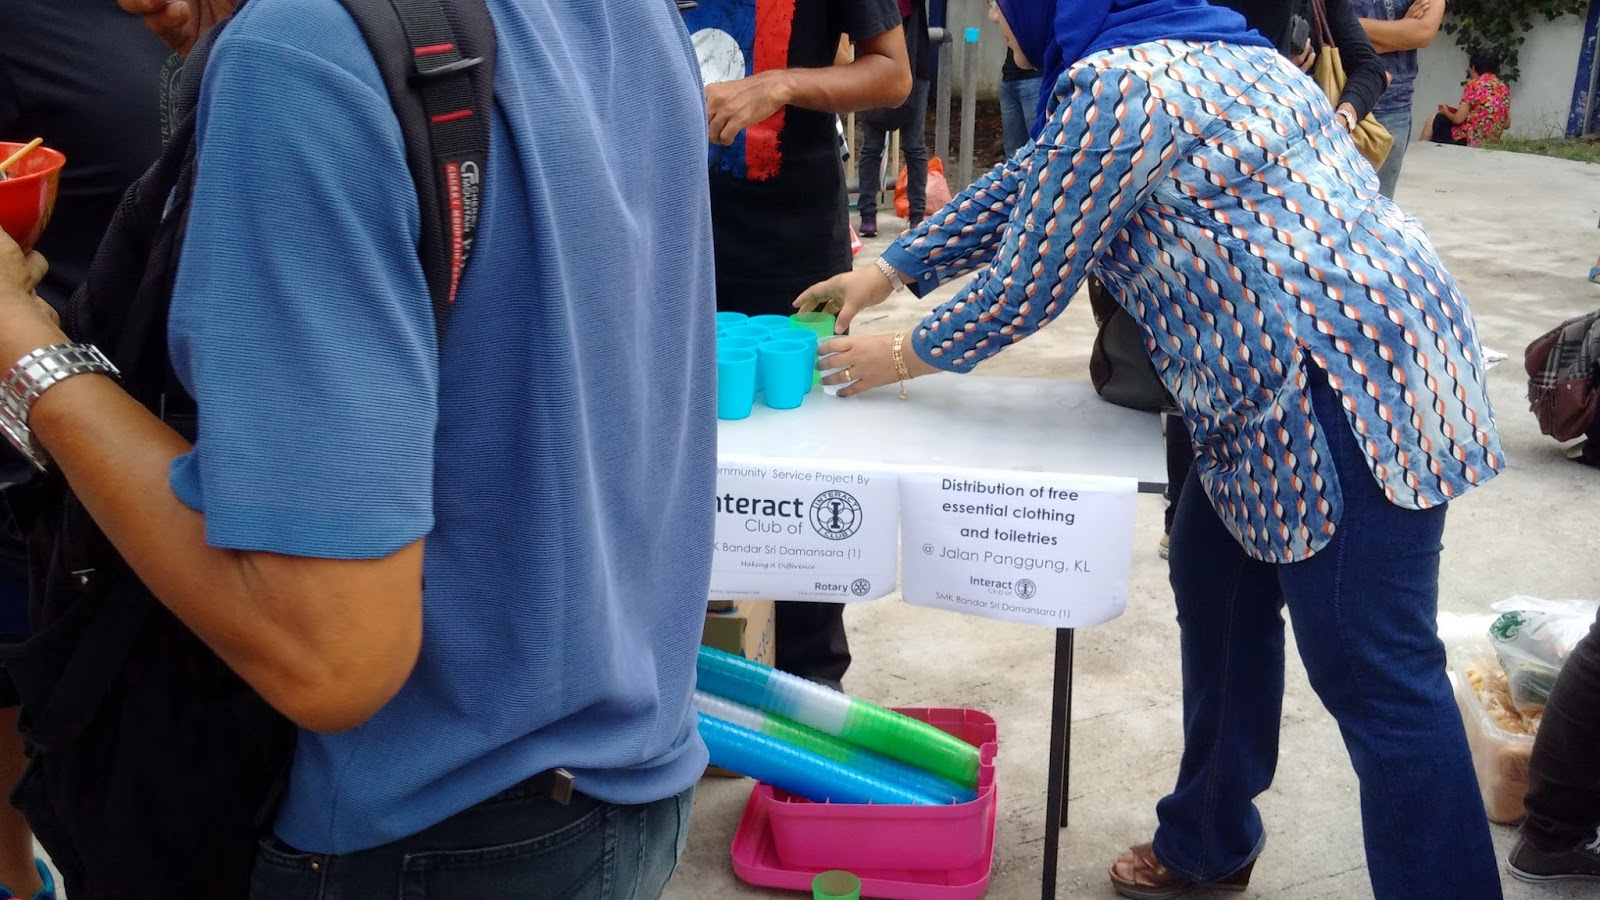 Dapur Jalanan S Partner Offering Clothes And Toiletries To The Homeless Besides Lack Of Access Housing Clients Also Face Hardships Related